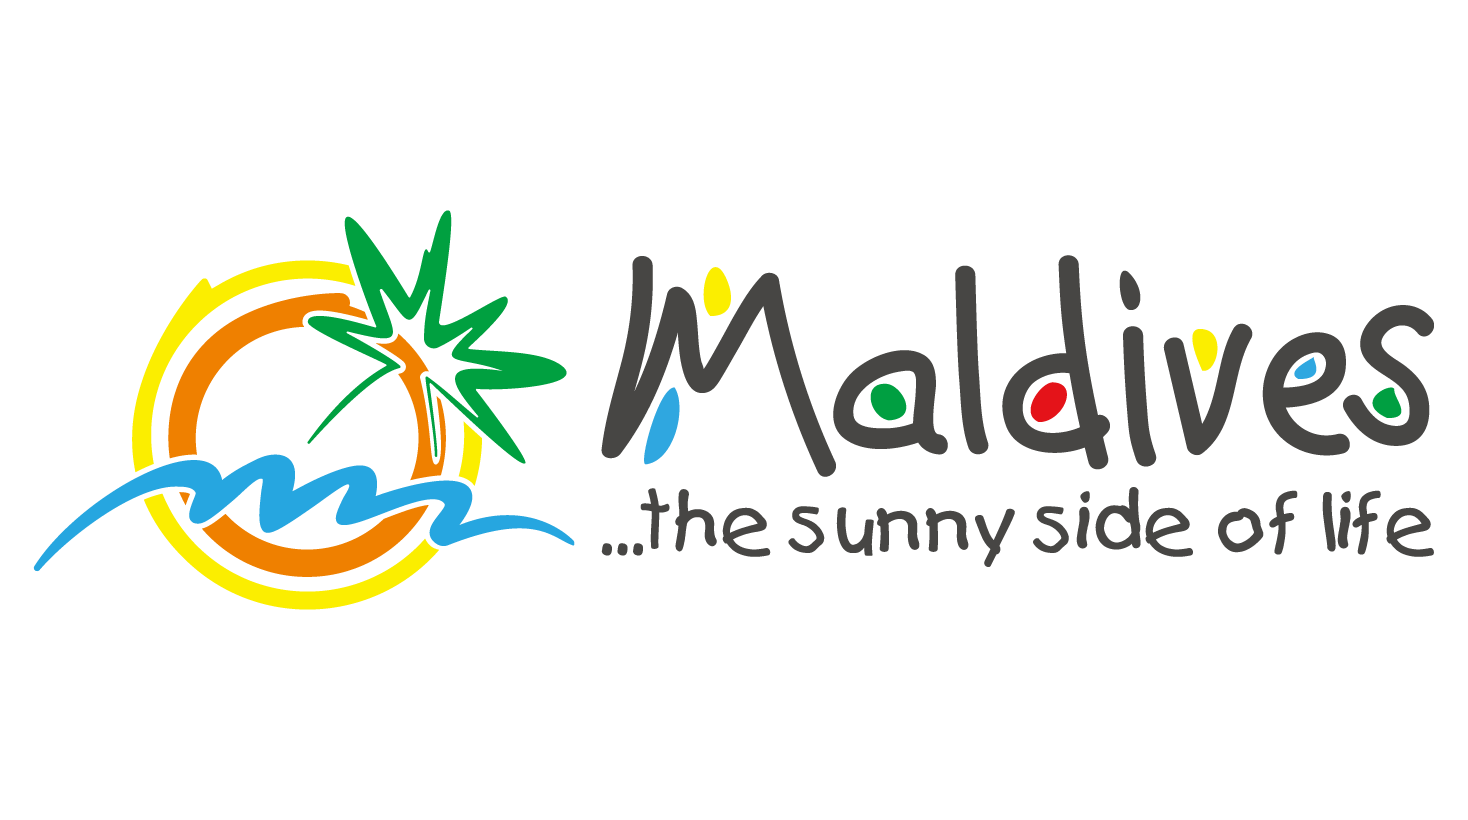 GOOD NEWS FROM THE MALDIVES: MALDIVES HAS COMMENCED THE ADMINISTRATION OF THE COVID-19 VACCINE